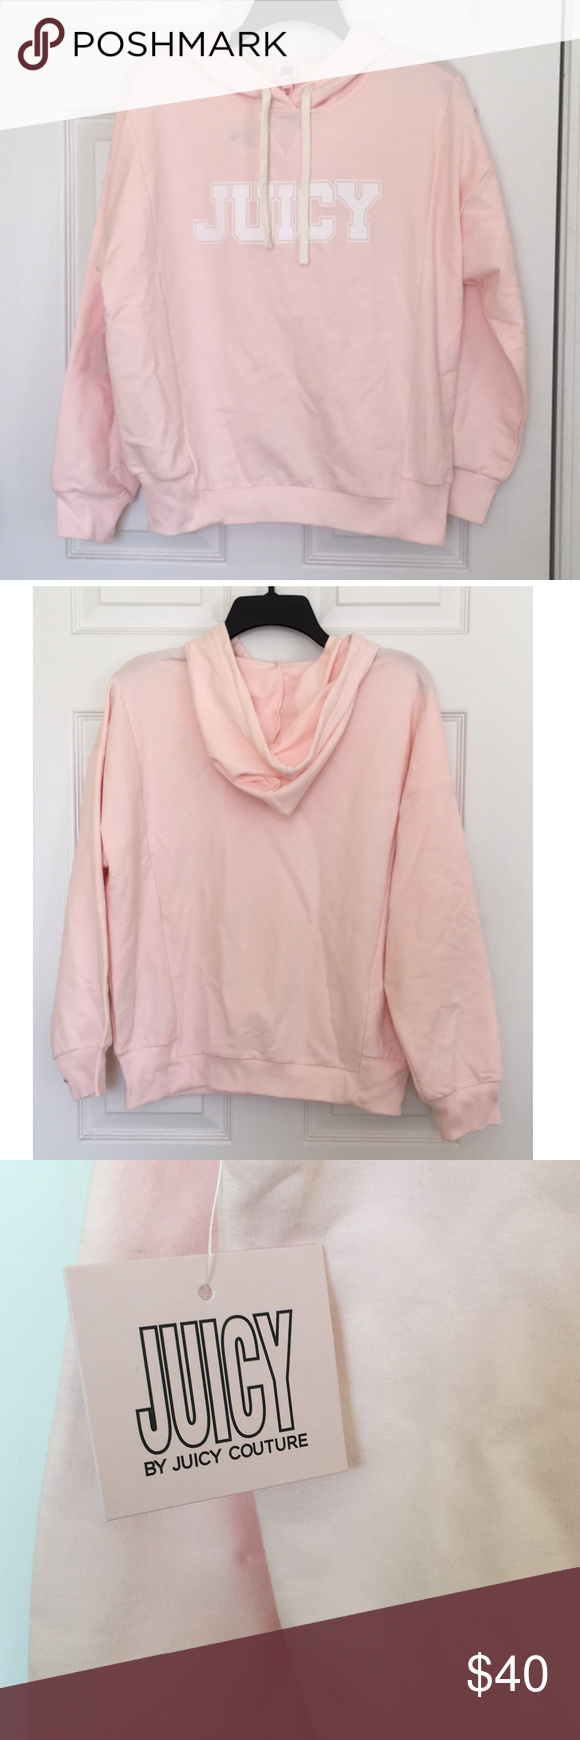 b12ca57c2ce Juicy by Juicy Couture Sweater Brand New With Tags Size M Pit to pit  25  inches Follow me on Vinted  nasimp